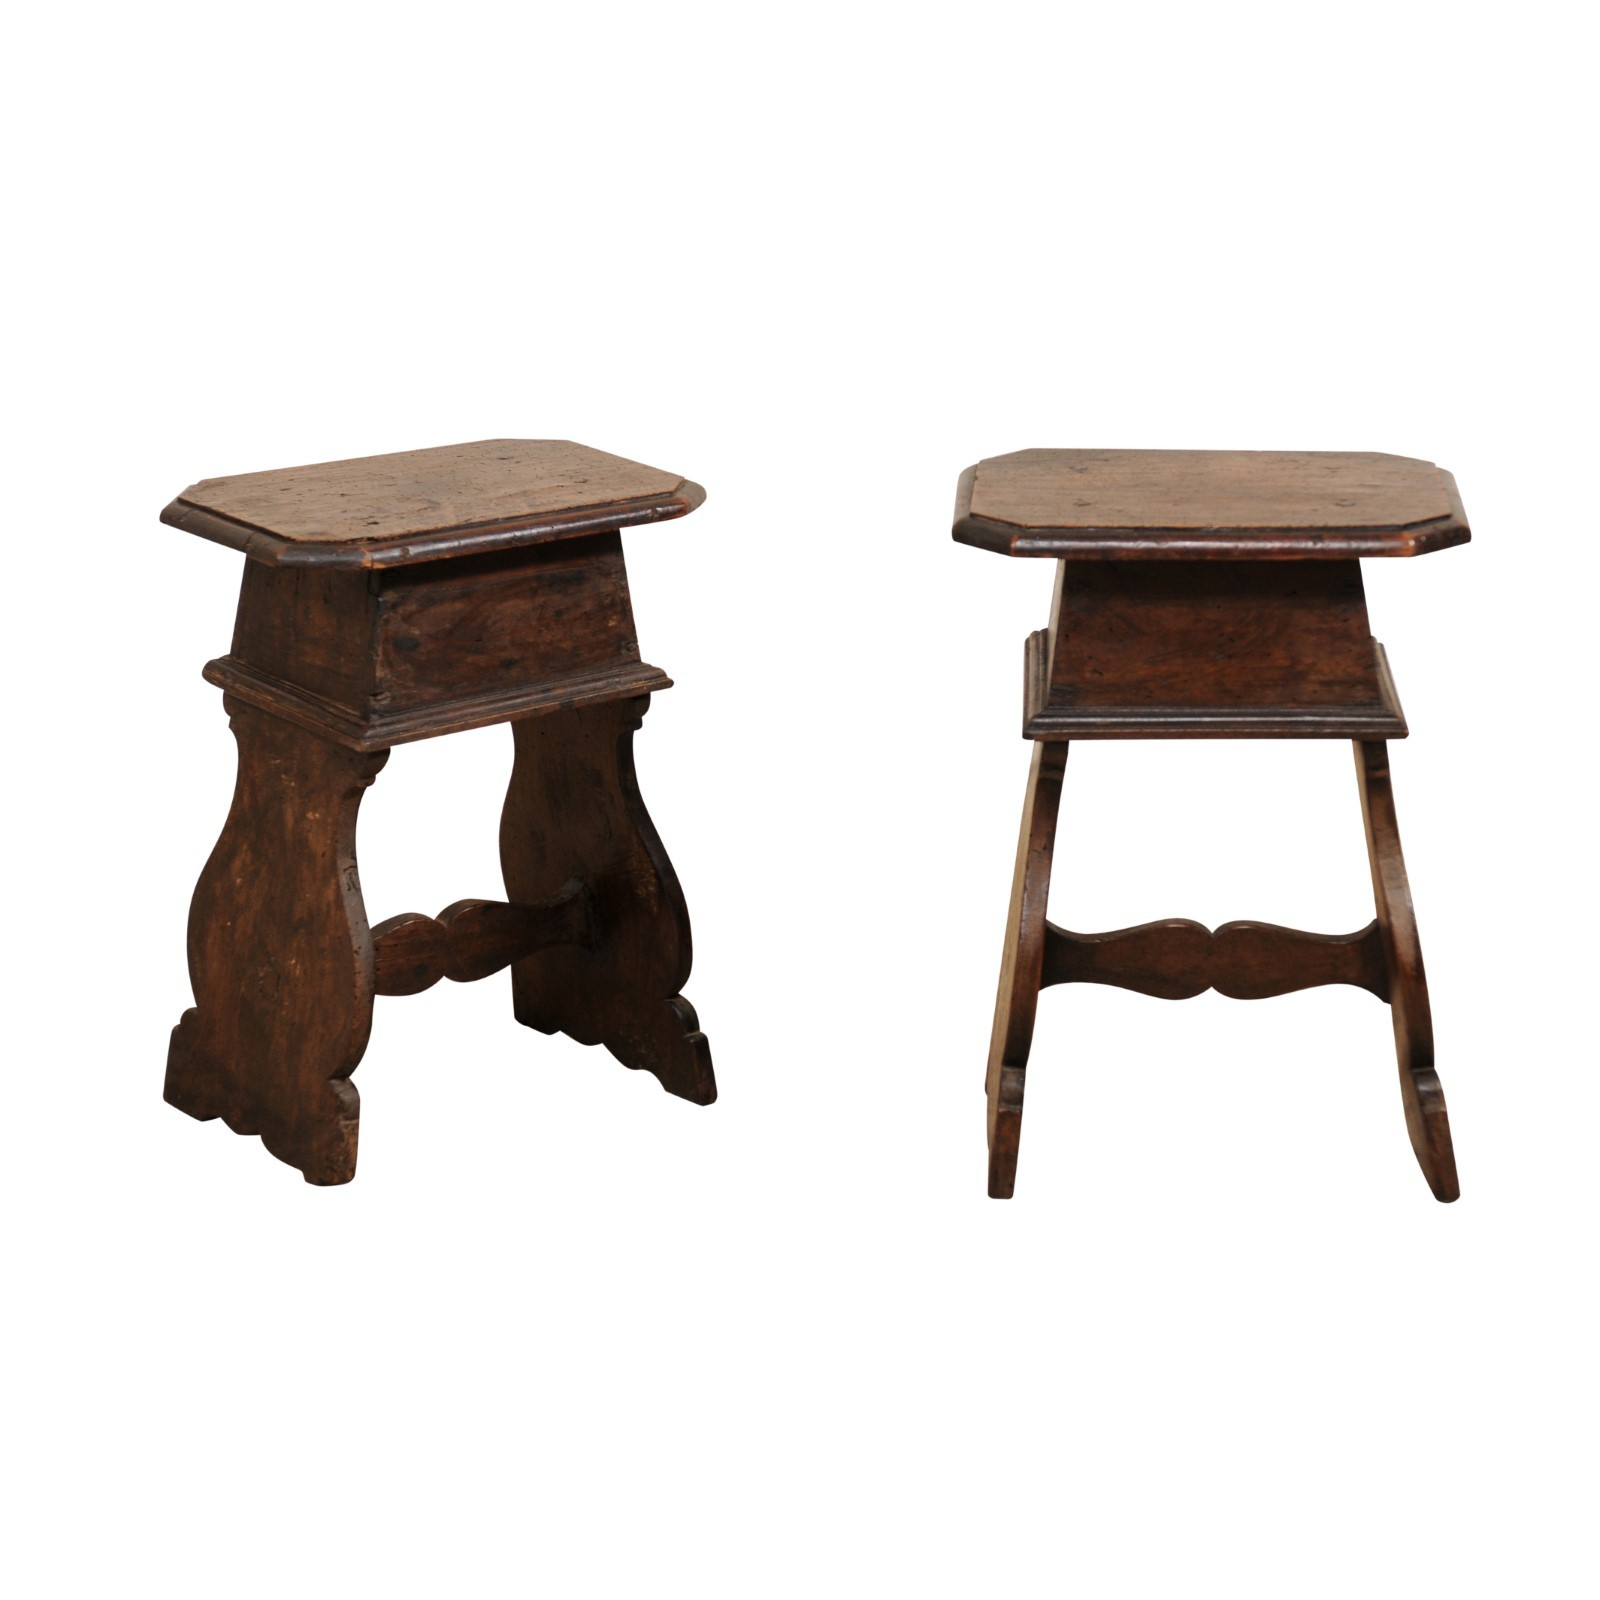 18th C. Renaissance Style Small Tables